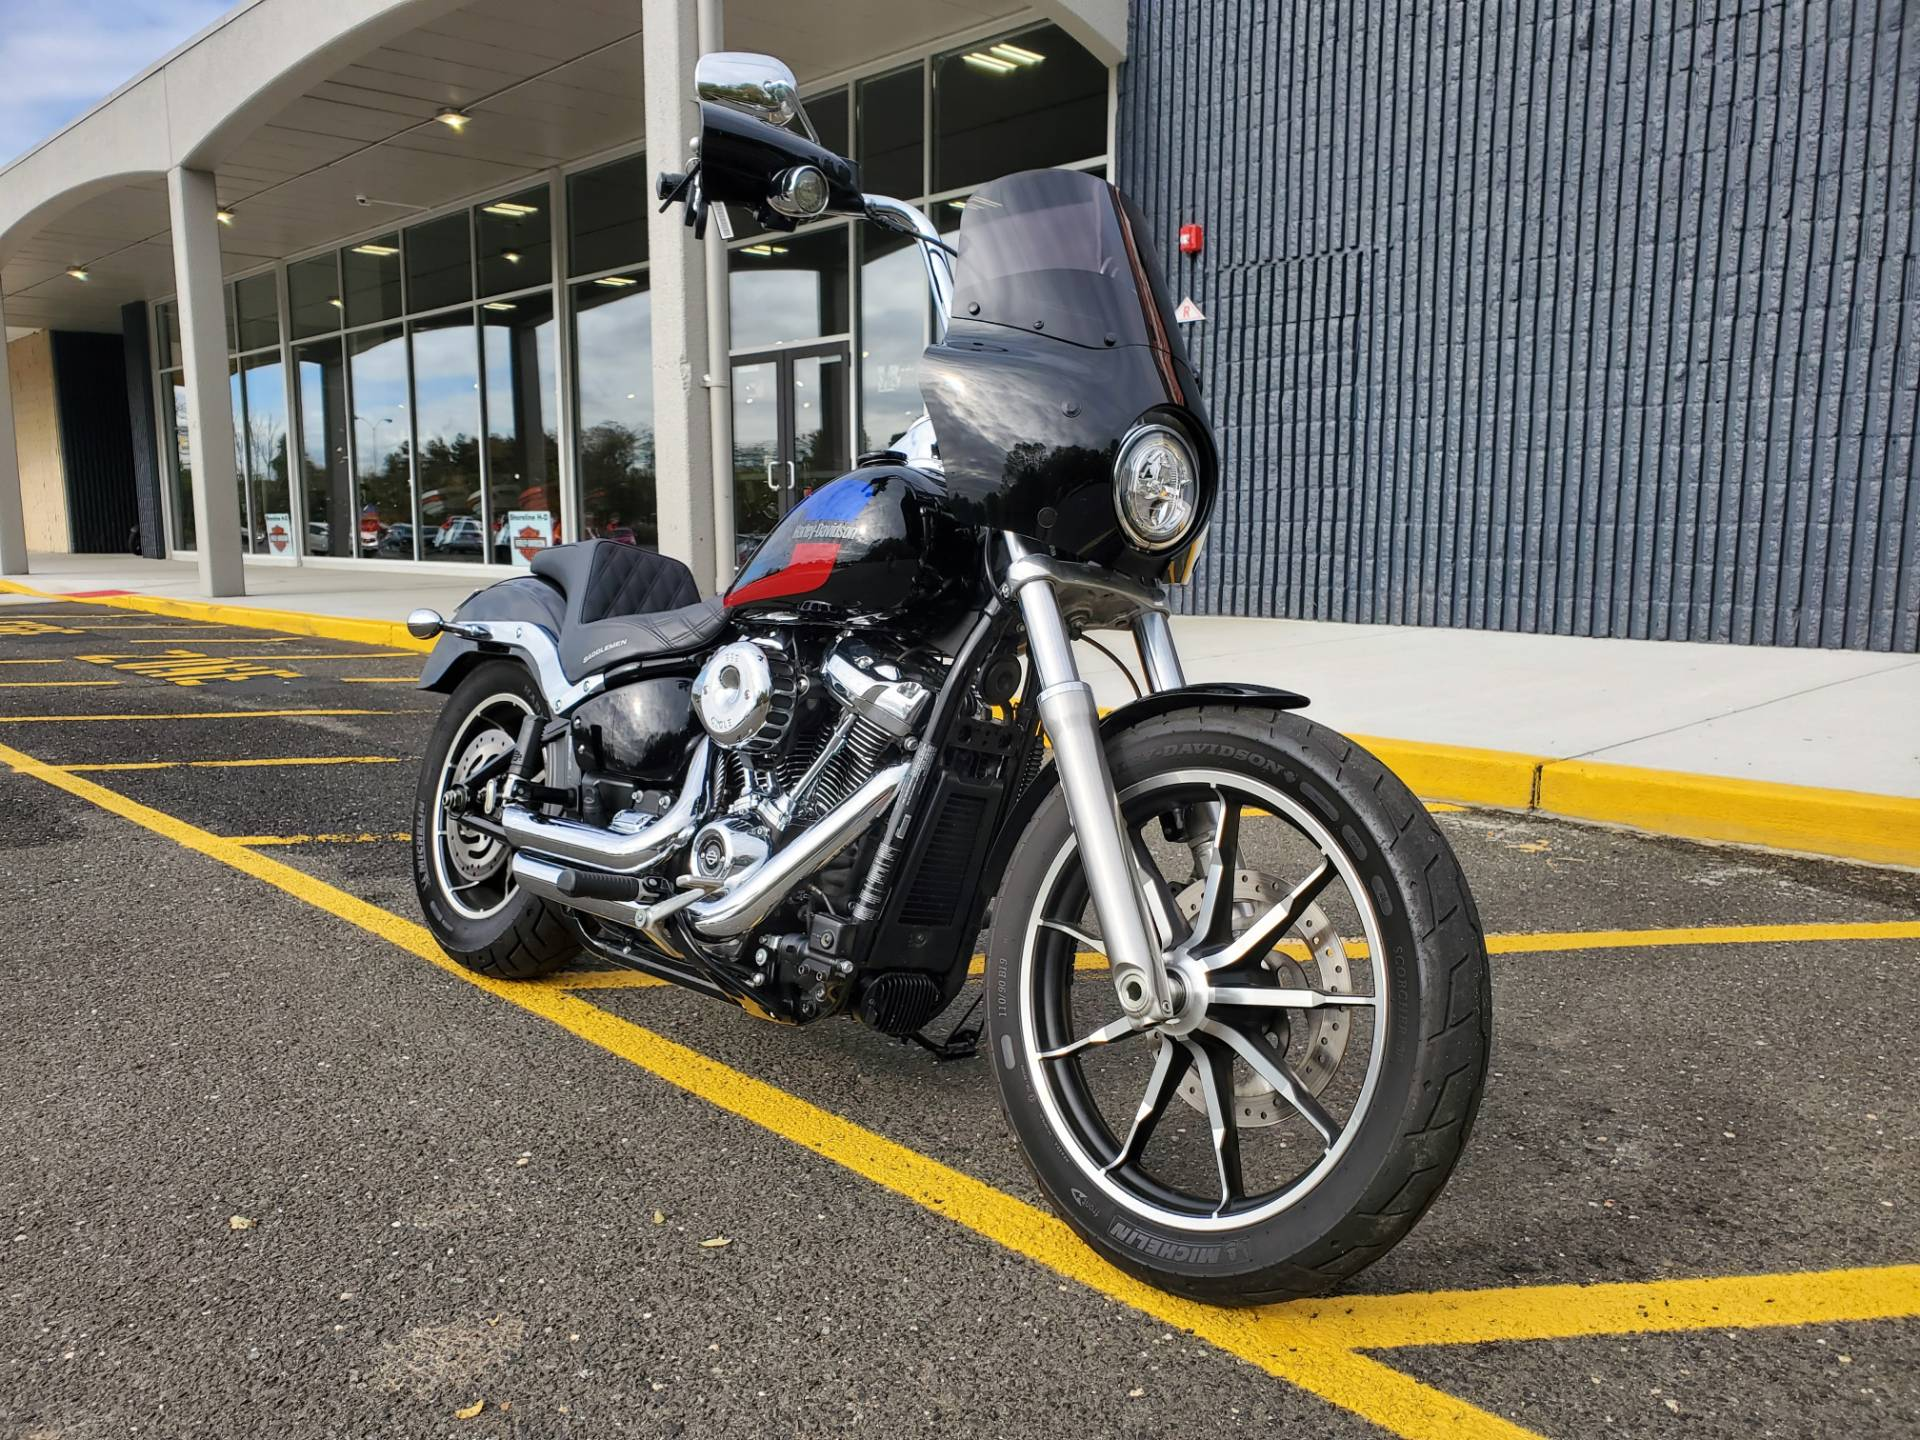 2018 Harley-Davidson Low Rider in West Long Branch, New Jersey - Photo 3